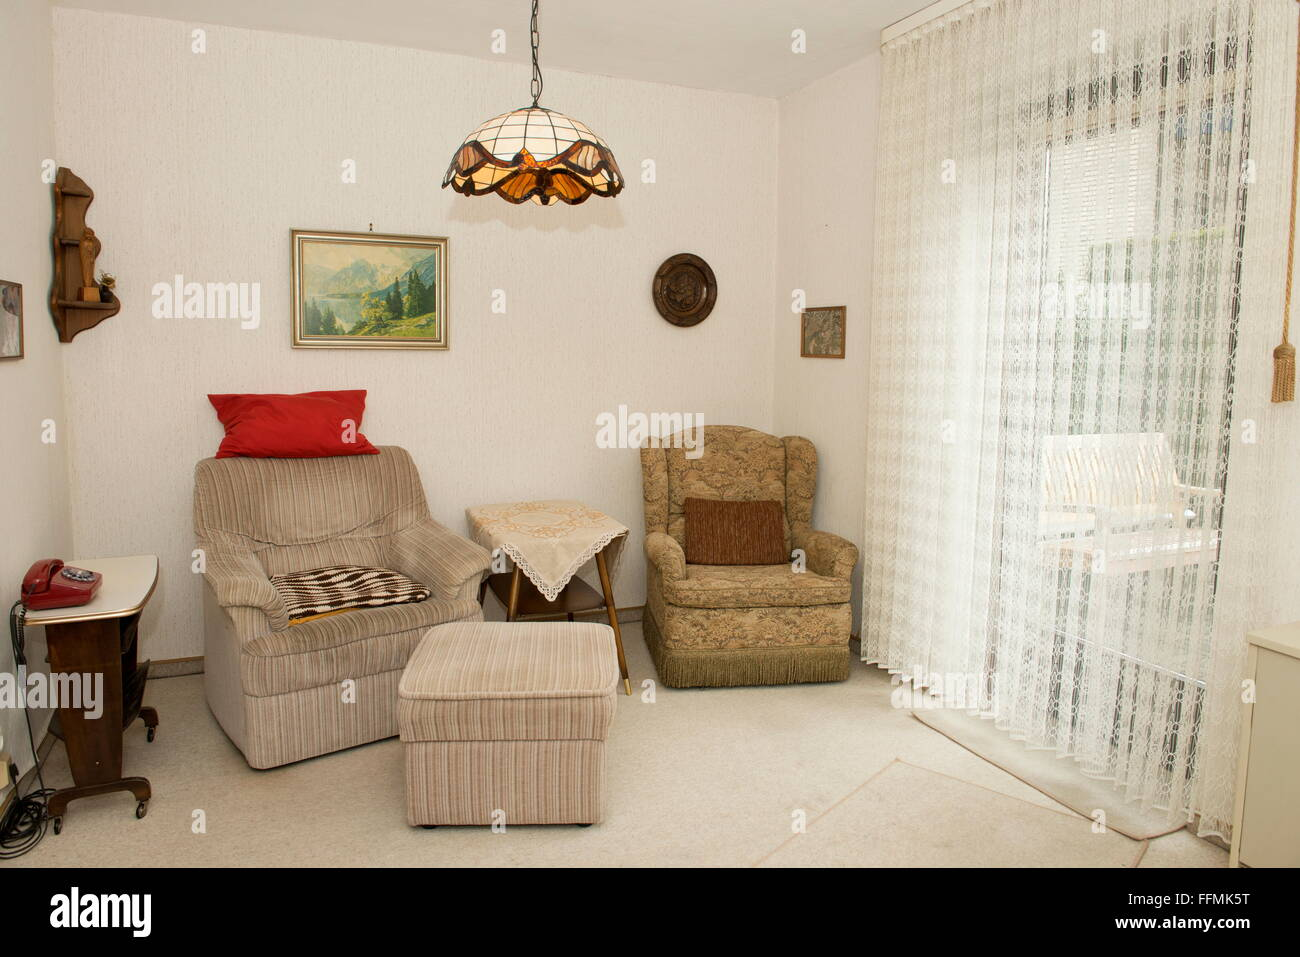 70s Wallpaper Living Room Stock Photos & 70s Wallpaper Living Room ...